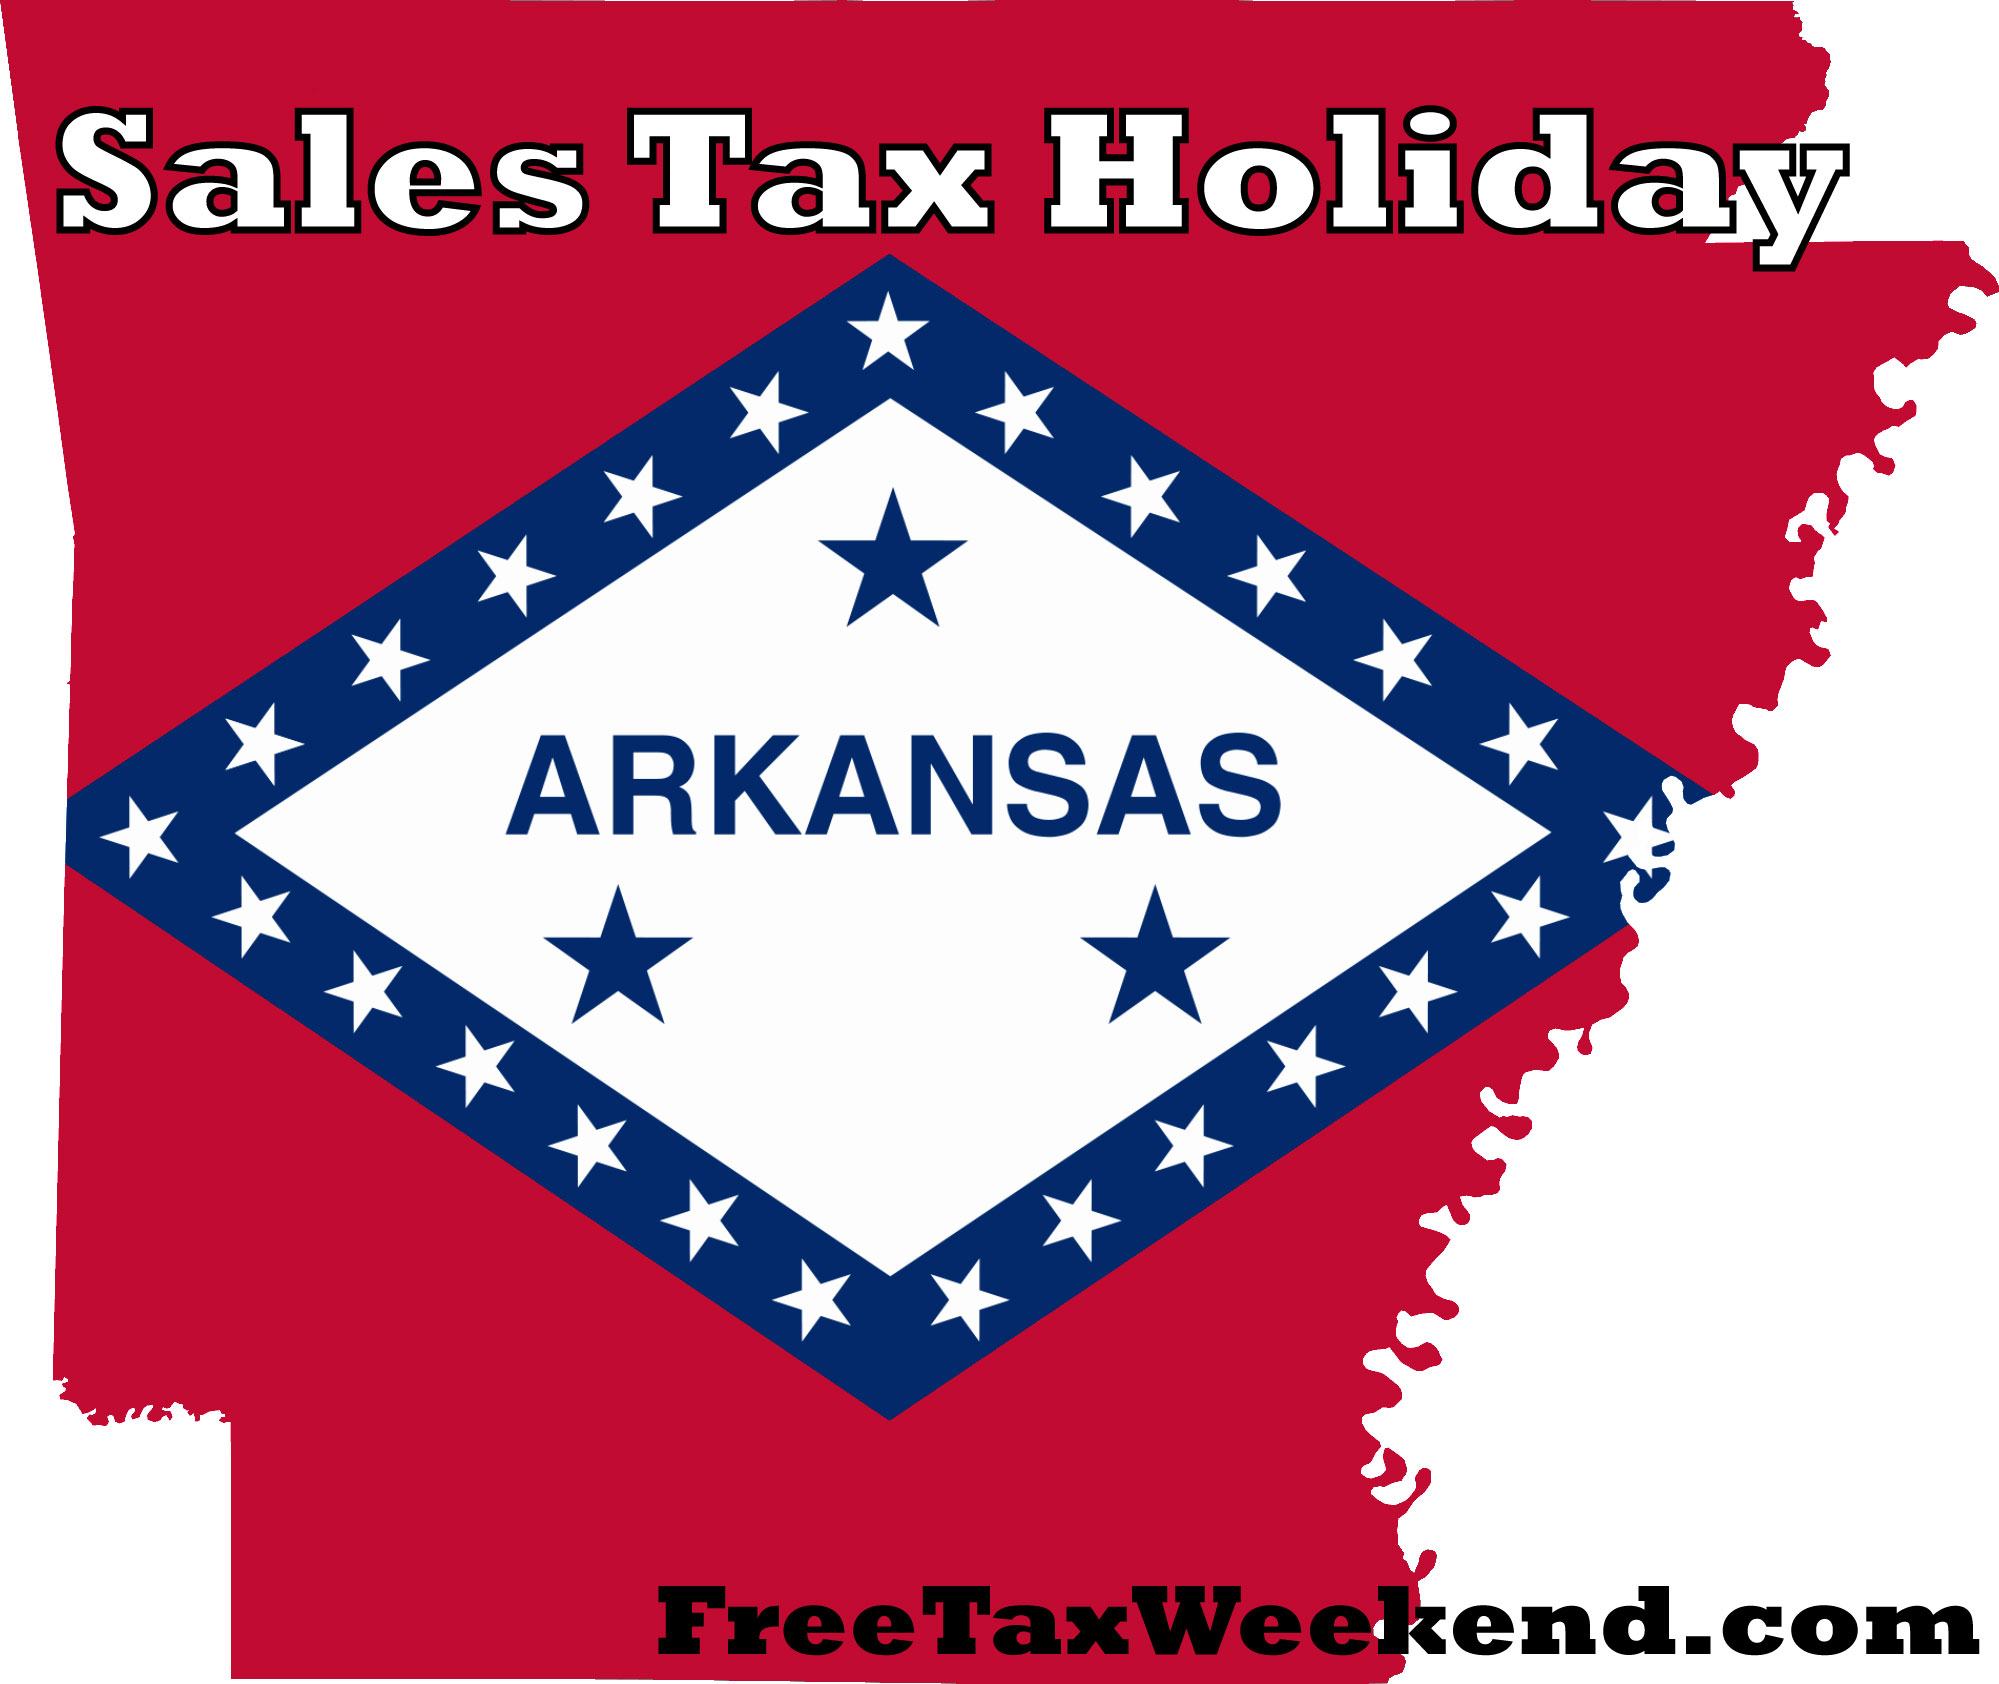 Arkansas Tax Free Weekend 2016